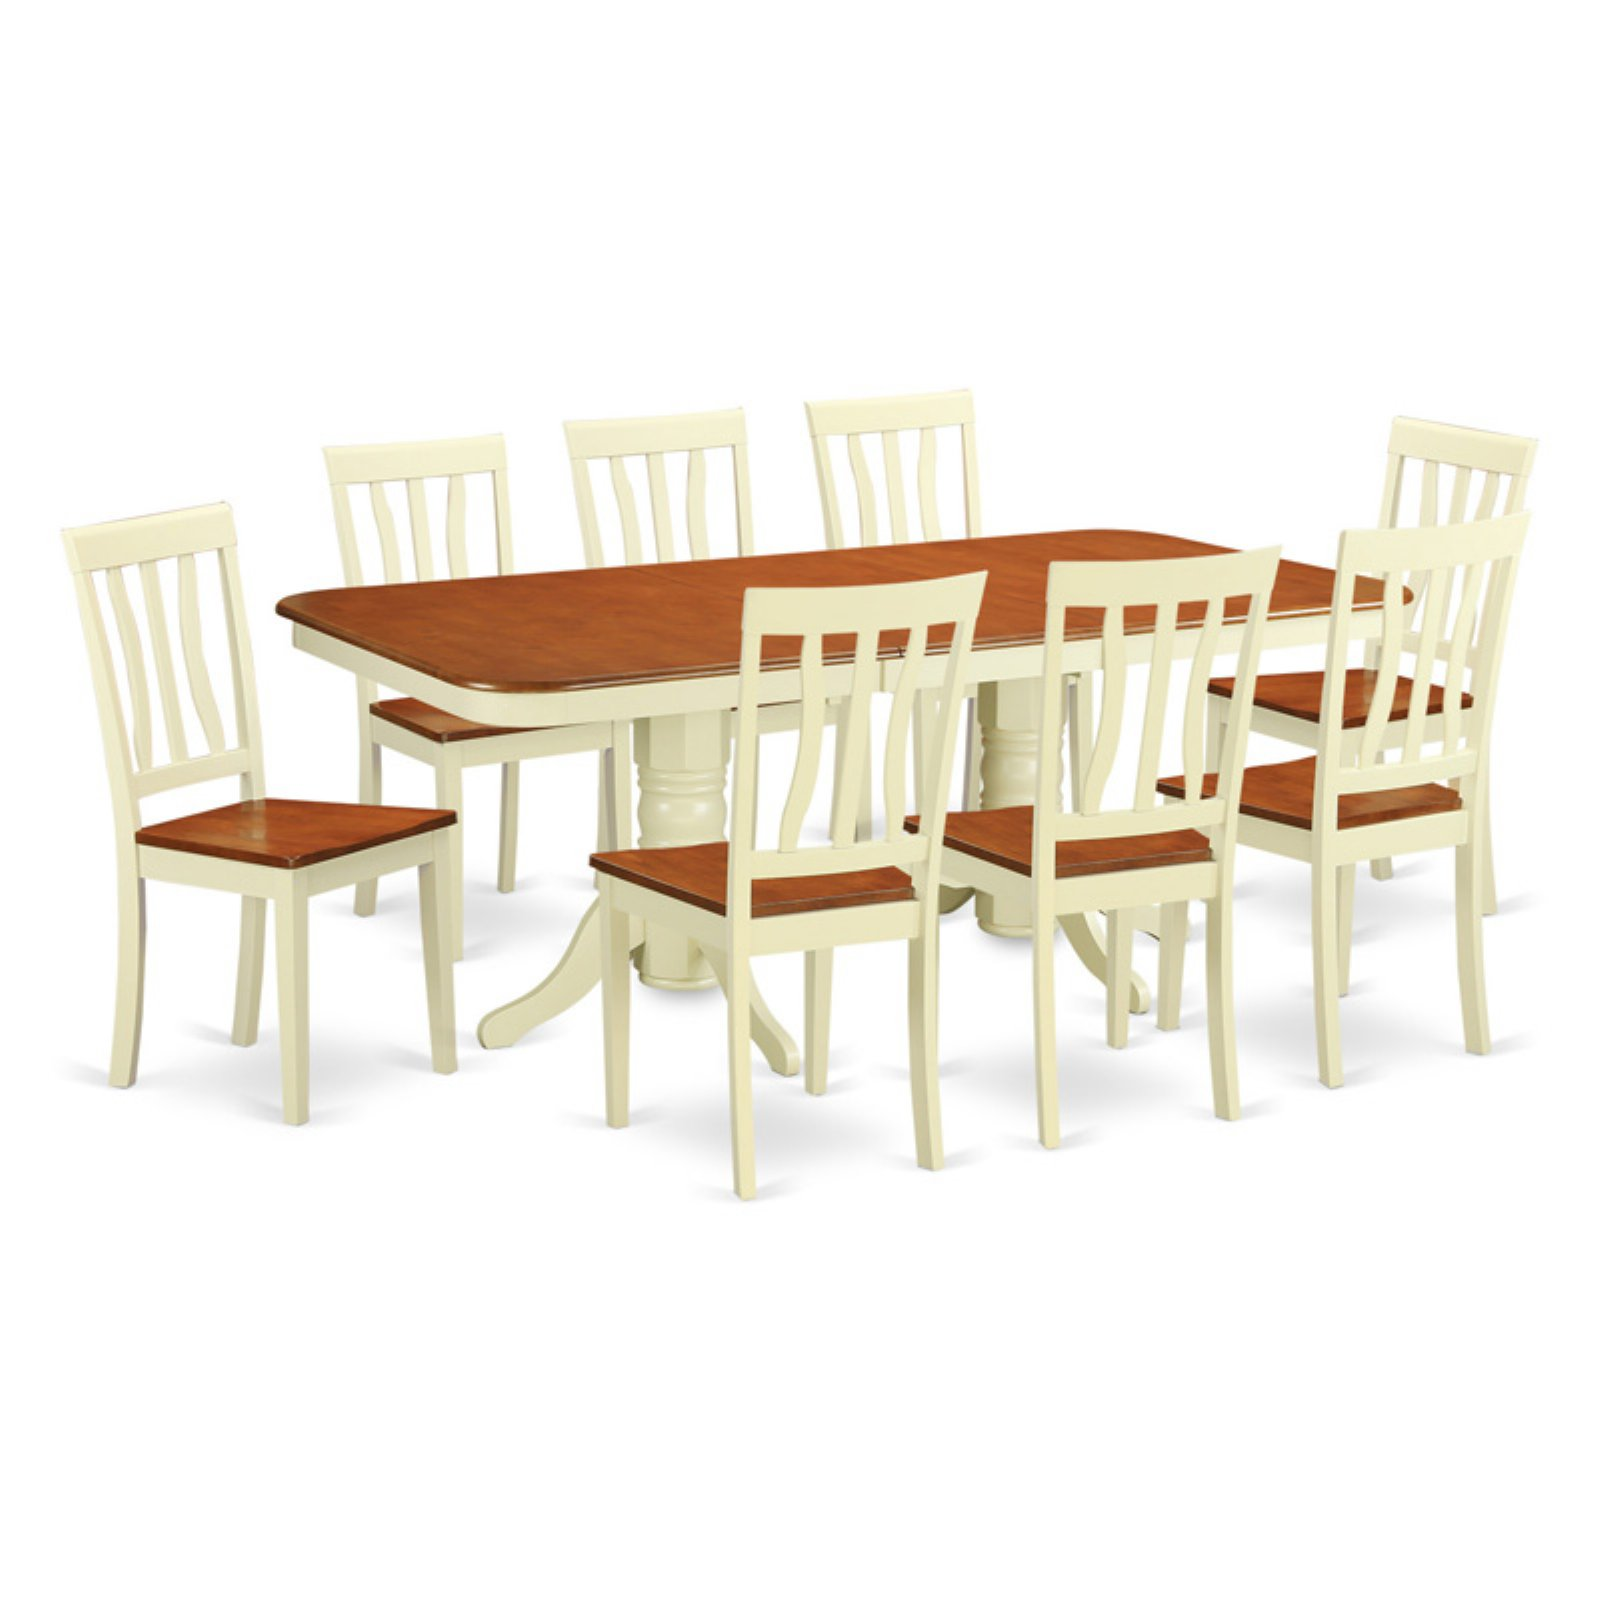 East West Furniture Napoleon 9 Piece Trestle Dining Table Set with Antique Wooden Chairs